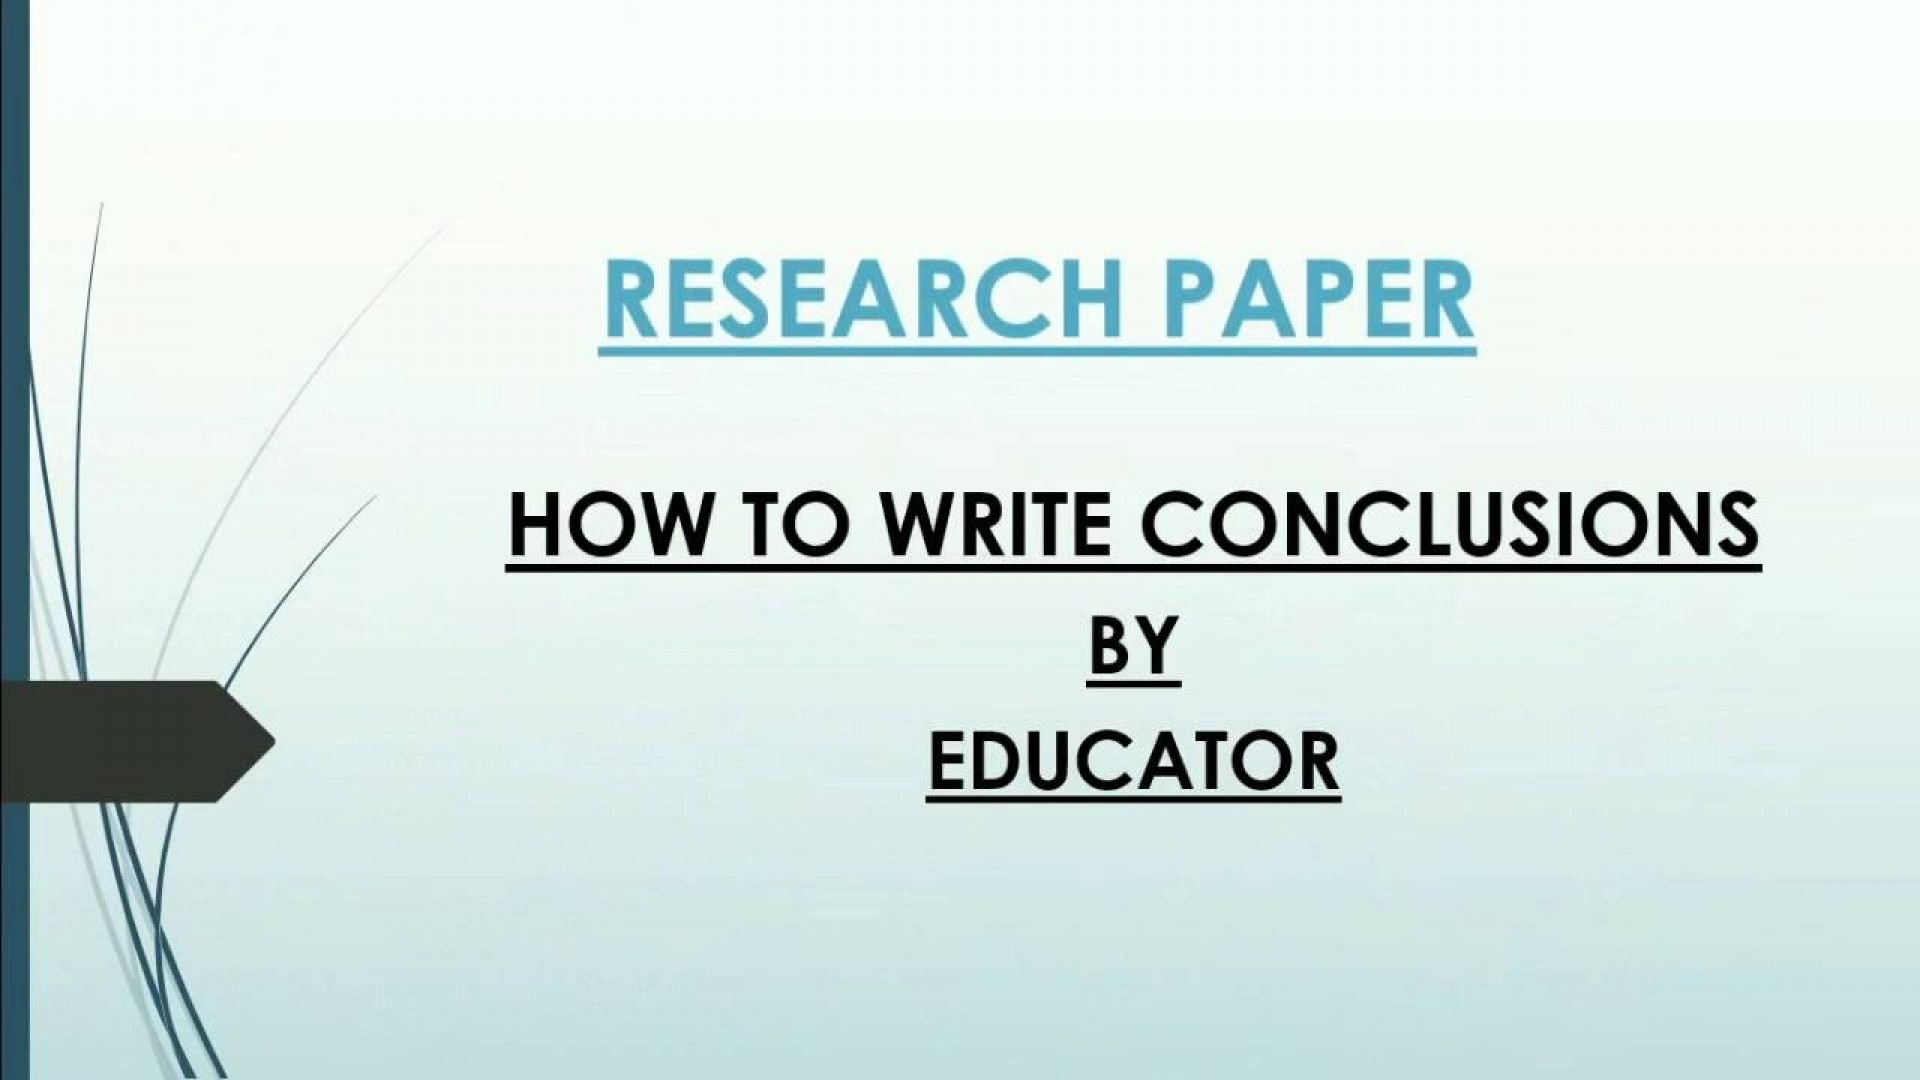 013 How To Write Conclusion For Research Paper Fearsome A Good Science In Example 1920